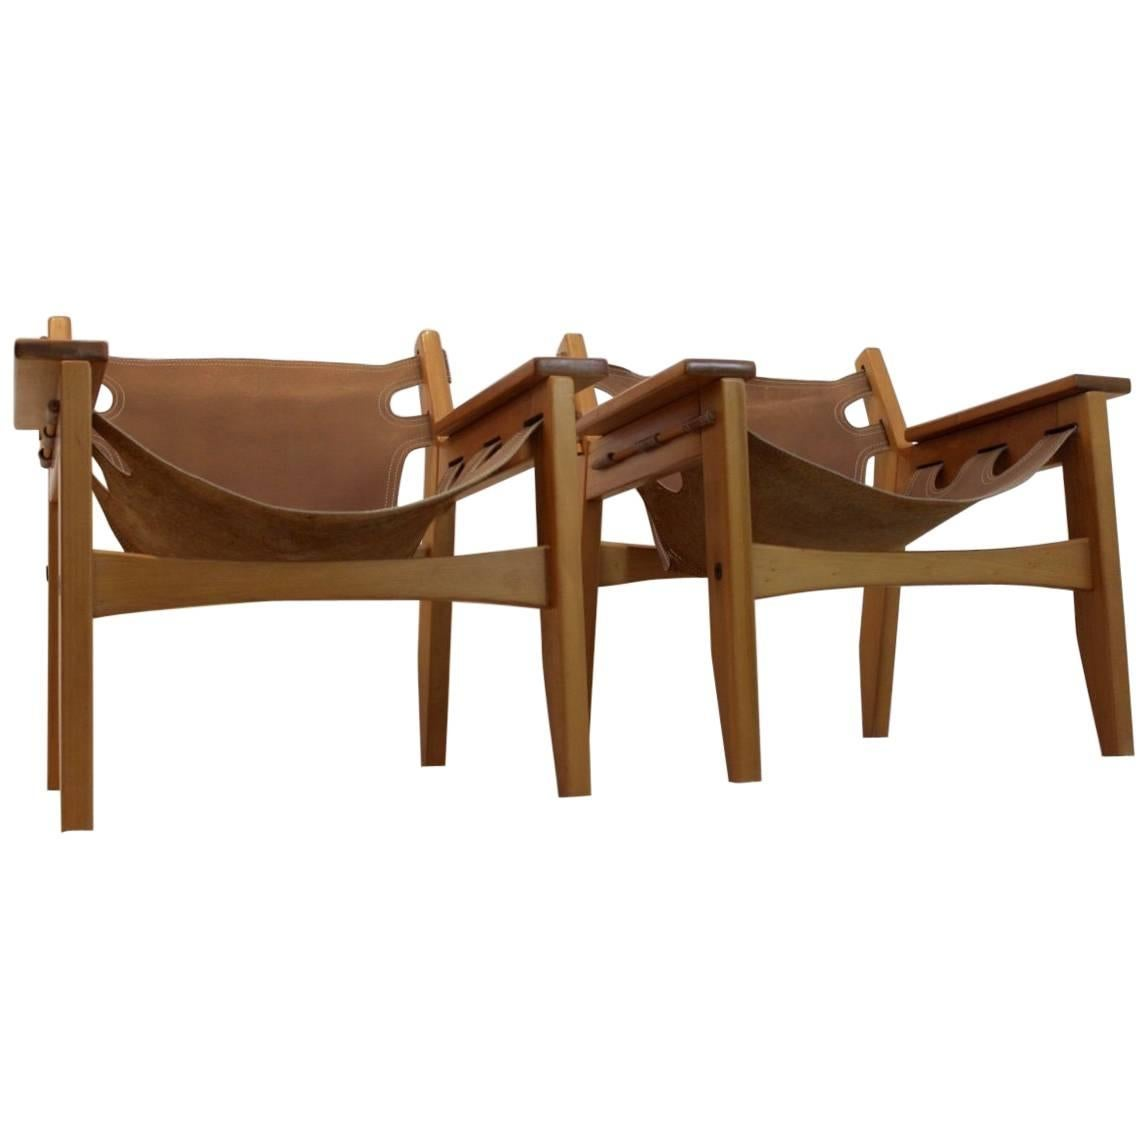 Overstuffed Armchairs For Sale Amazing Sergio Rodrigues 'kilin' Lounge Chairs For Oca